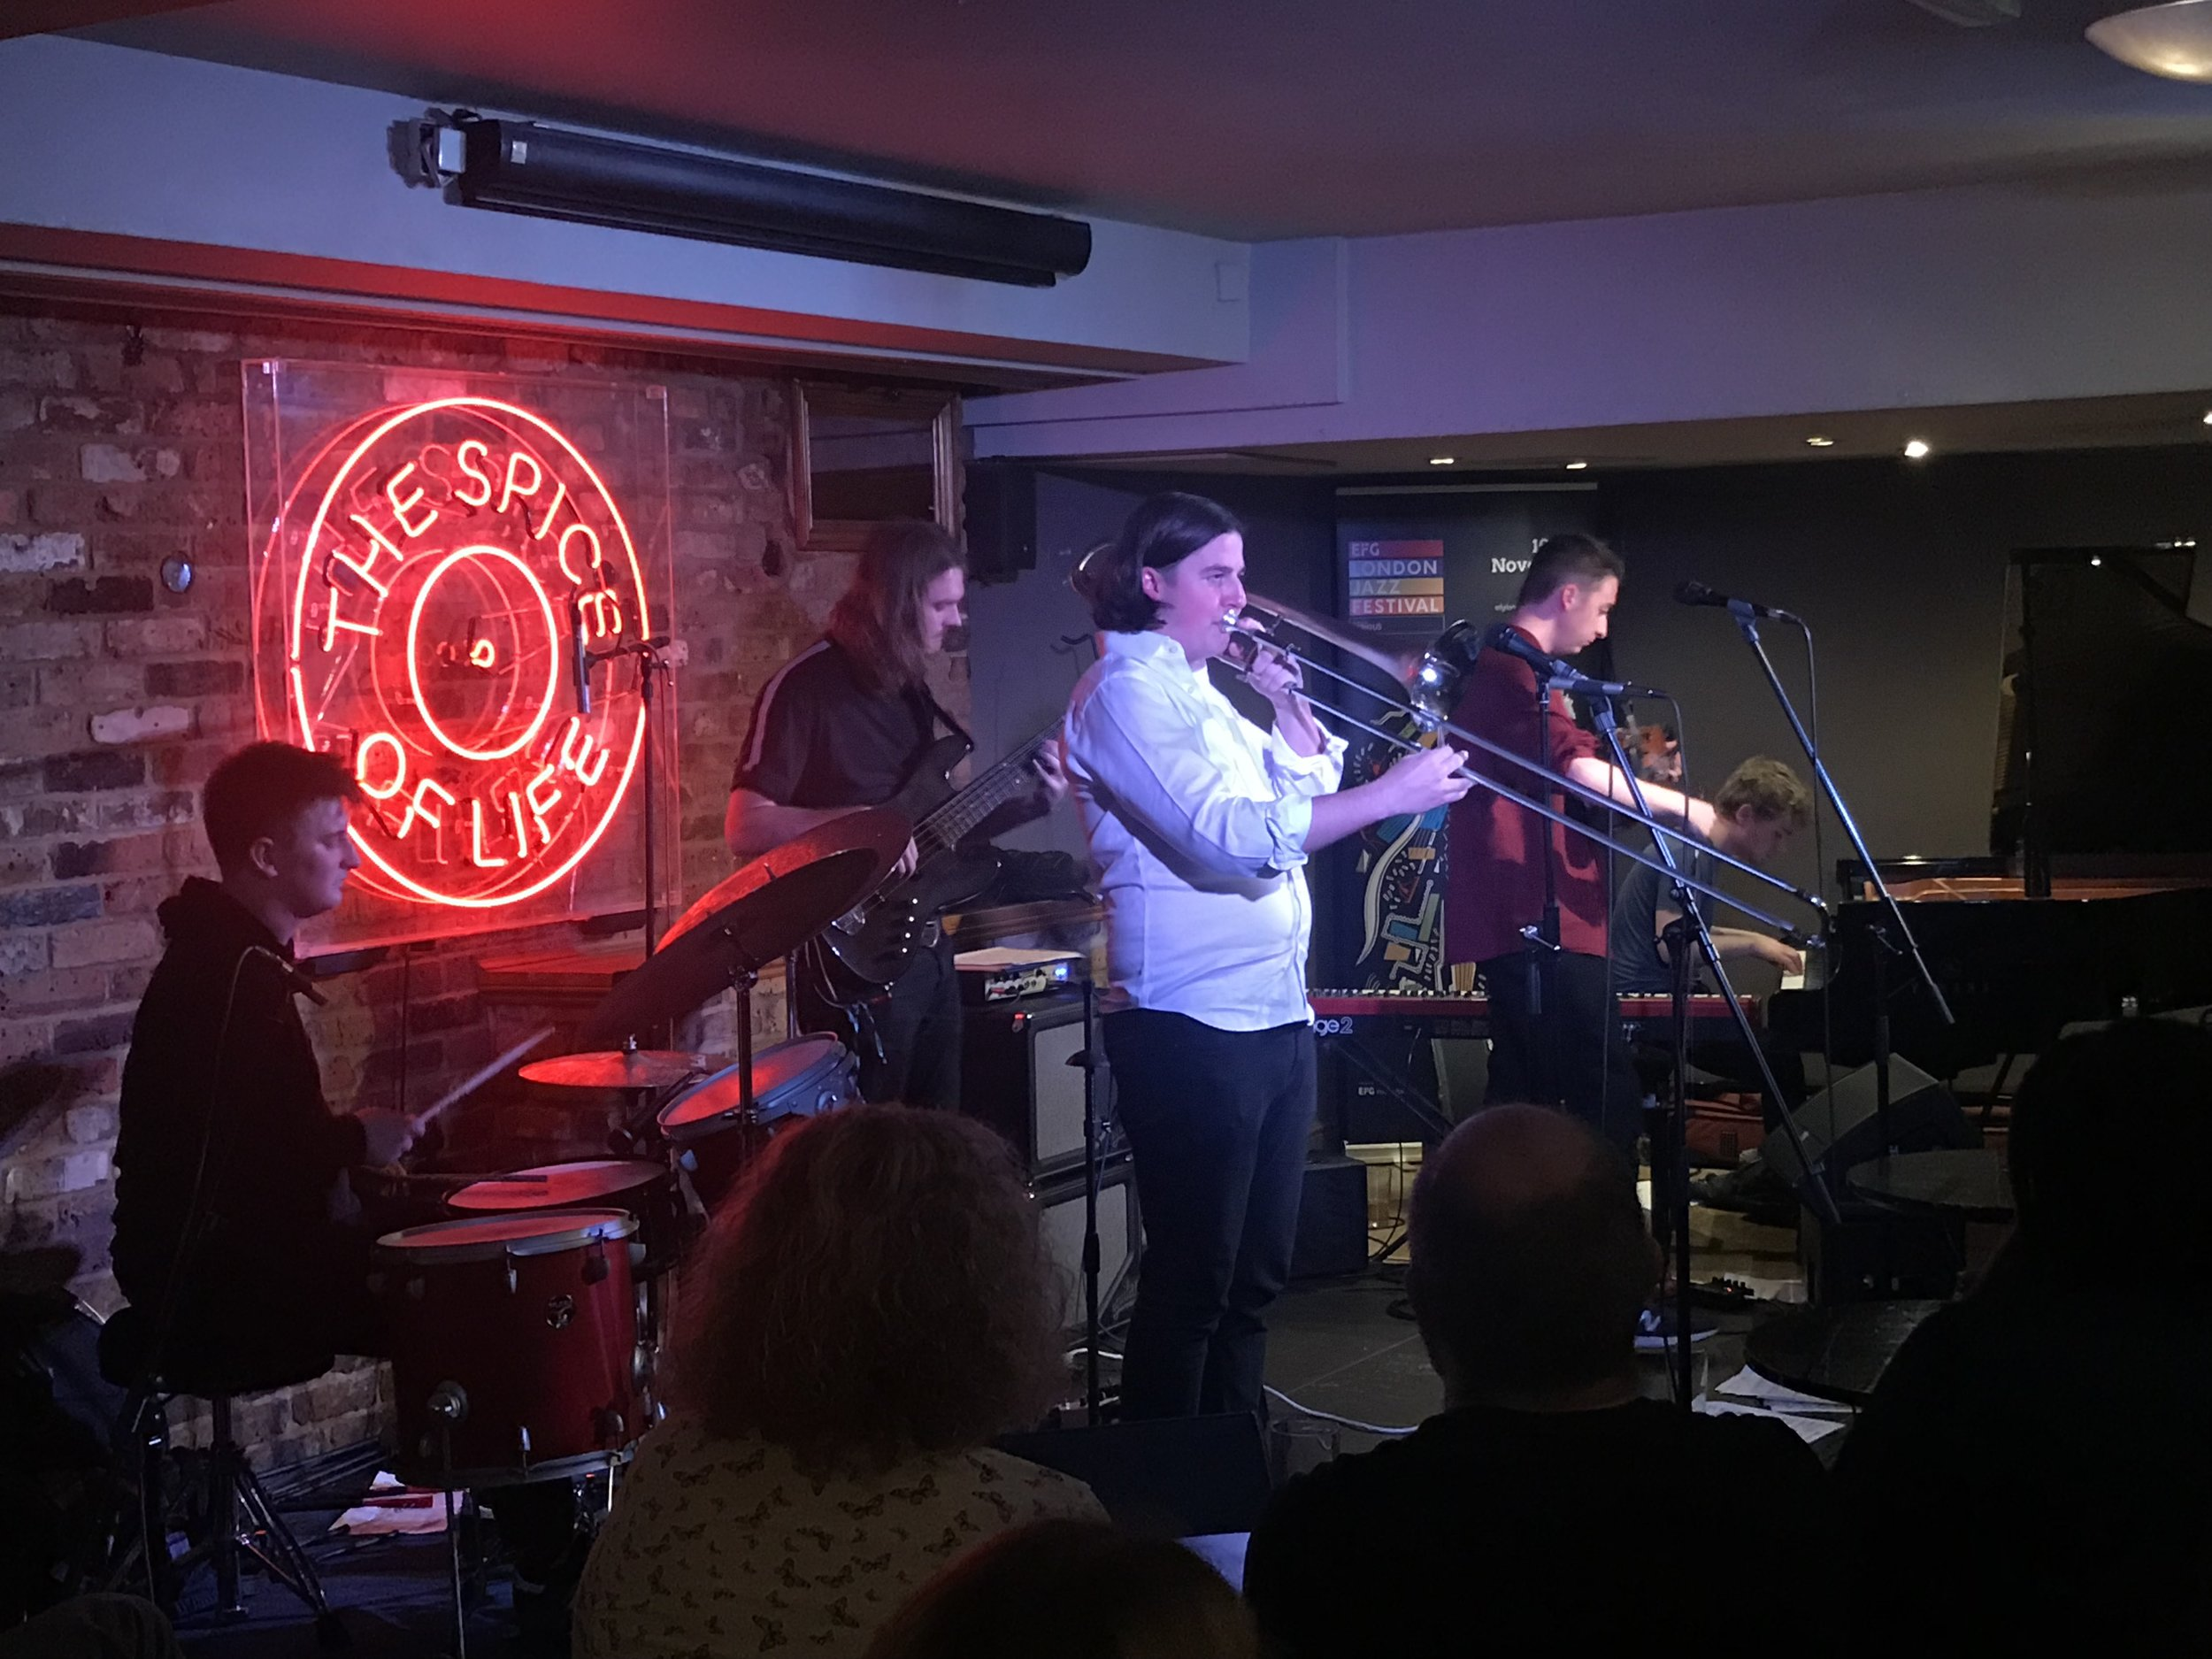 Rory follows up with his band, Jam Experiment, at Spice of Life.